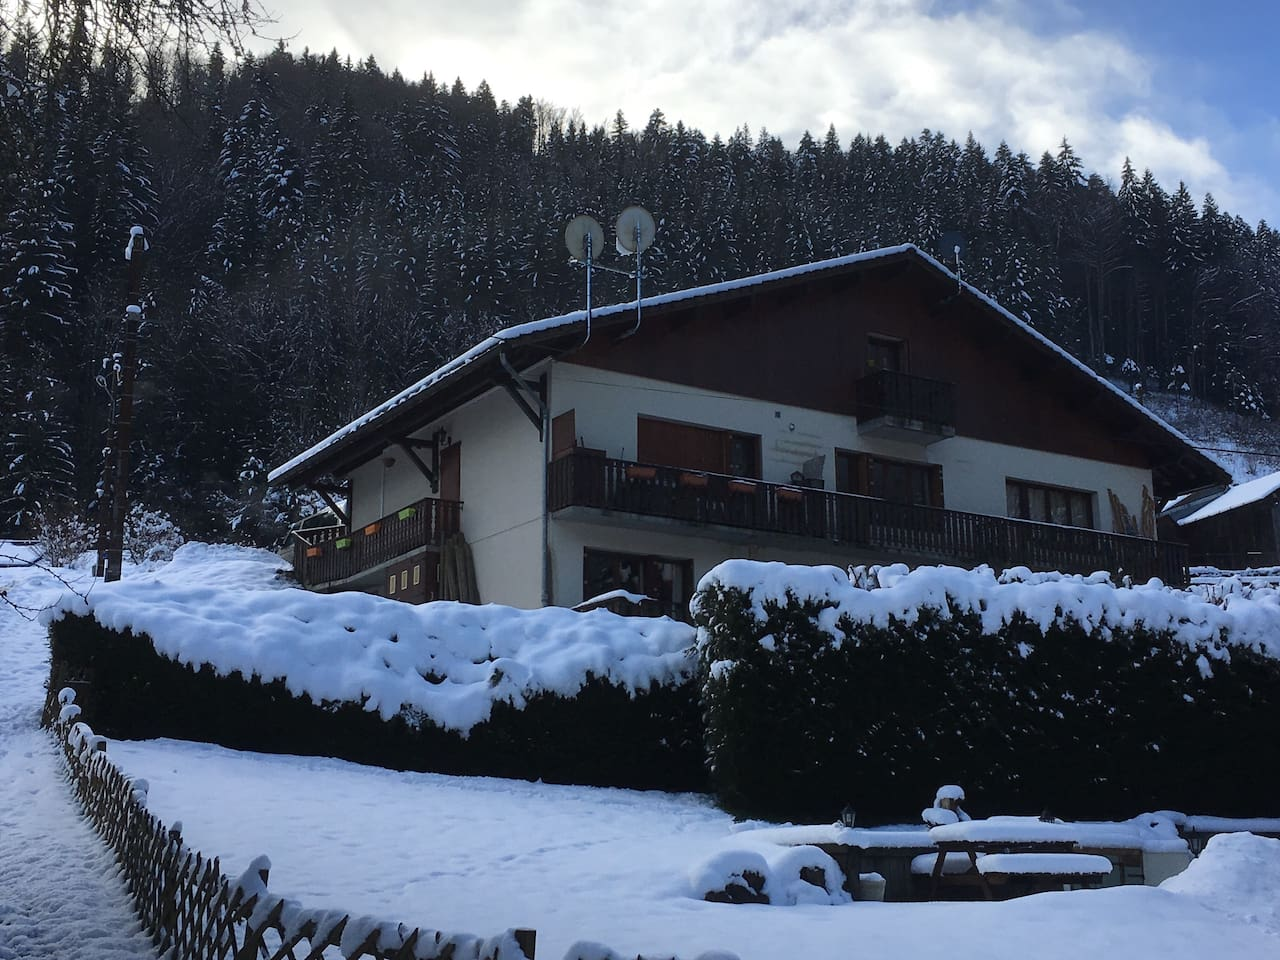 Chalet containing Studio Cinq (bottom left of Chalet)